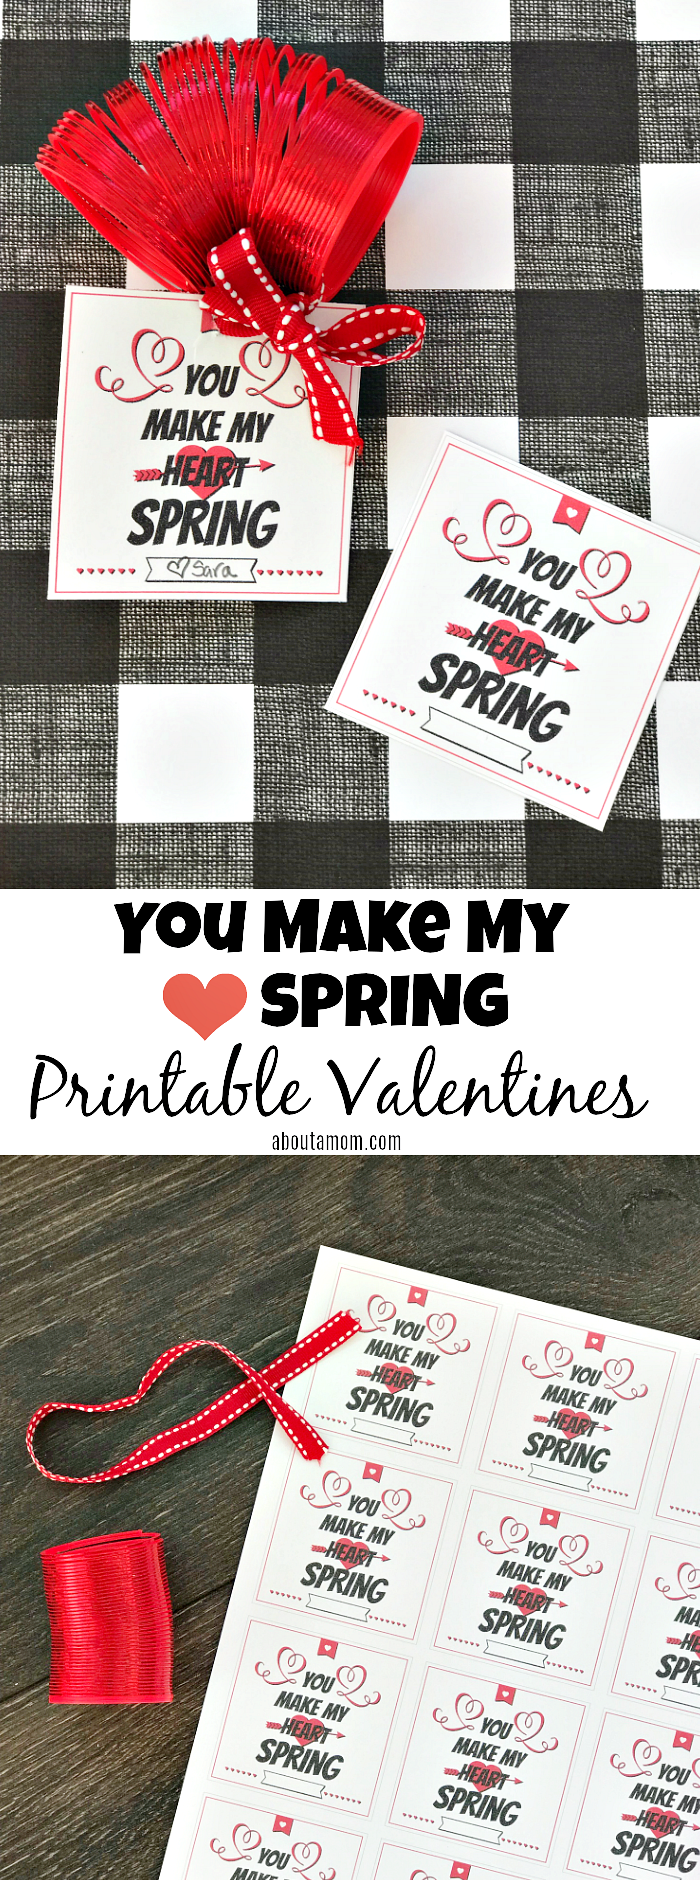 You Make My Heart Spring Valentine Printable. Just print, cut out and attach to a small spring toy. This is the perfect Valentine for kids to hand out to the class.